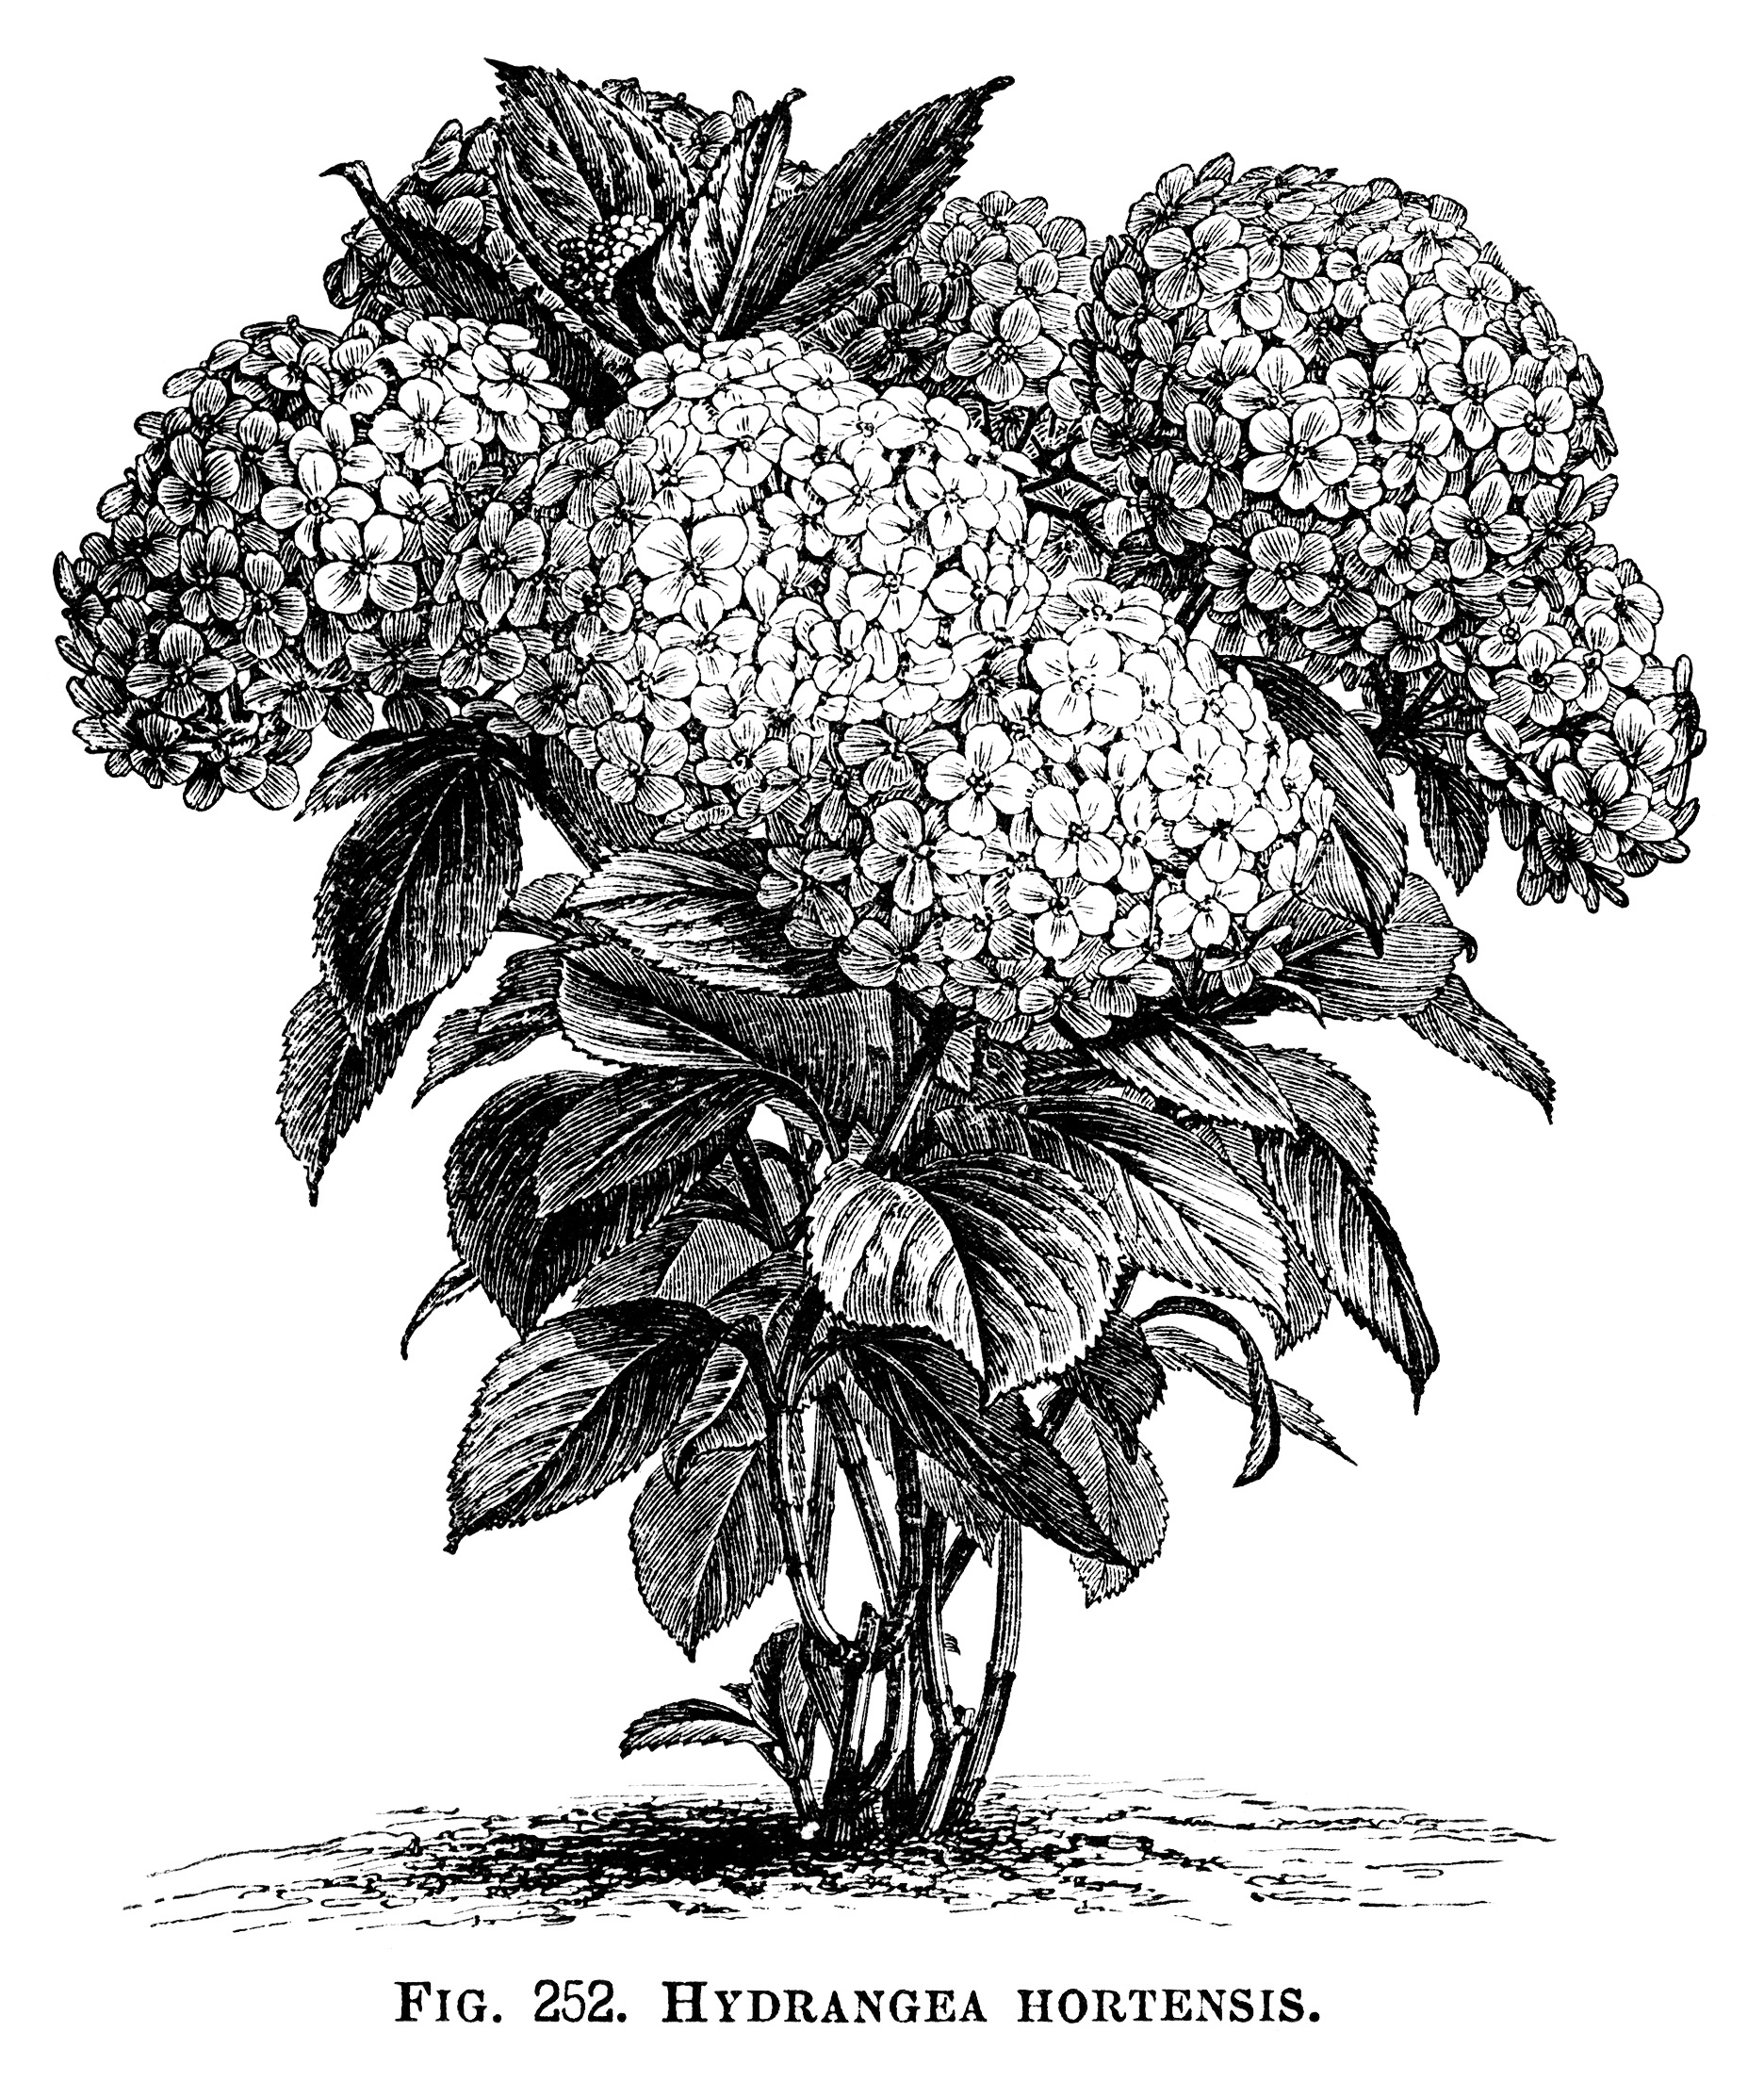 Hydrangea Hortensis, hydrangea flower, black and white graphics.